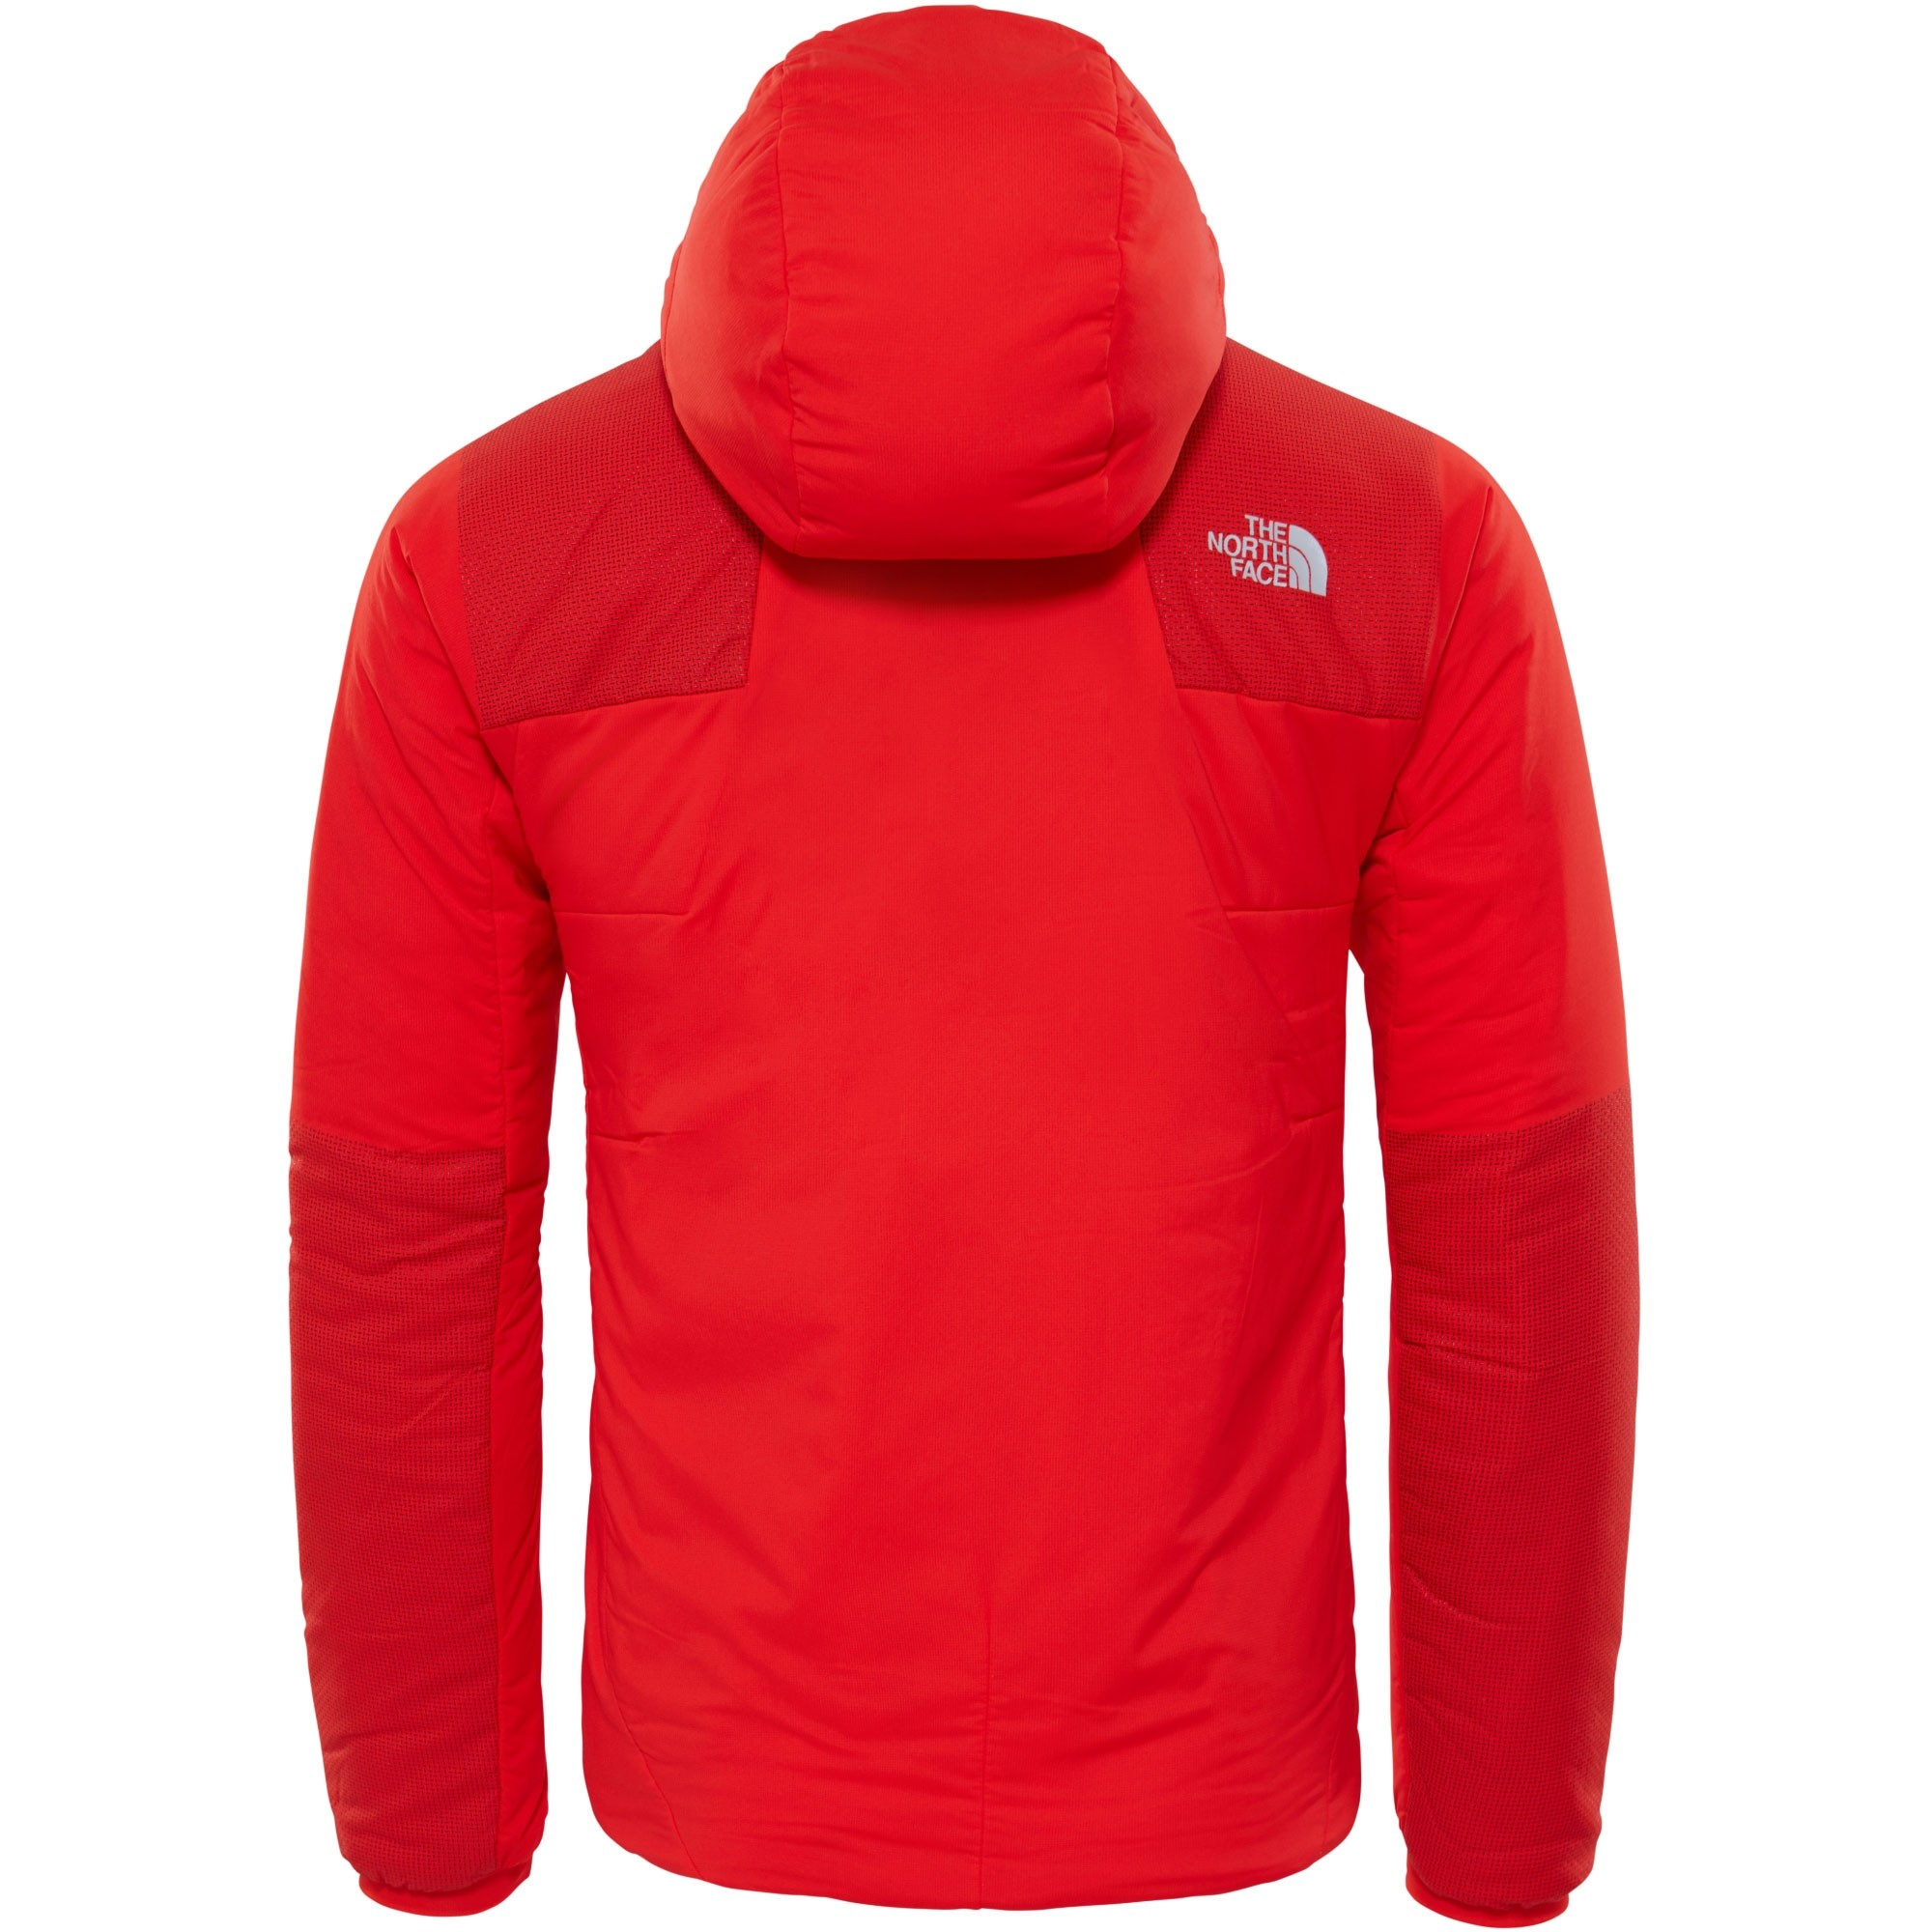 The-North-Face-Mens-Summit-L3-Ventrix-Hoodie-Fiery-Red-1-W17